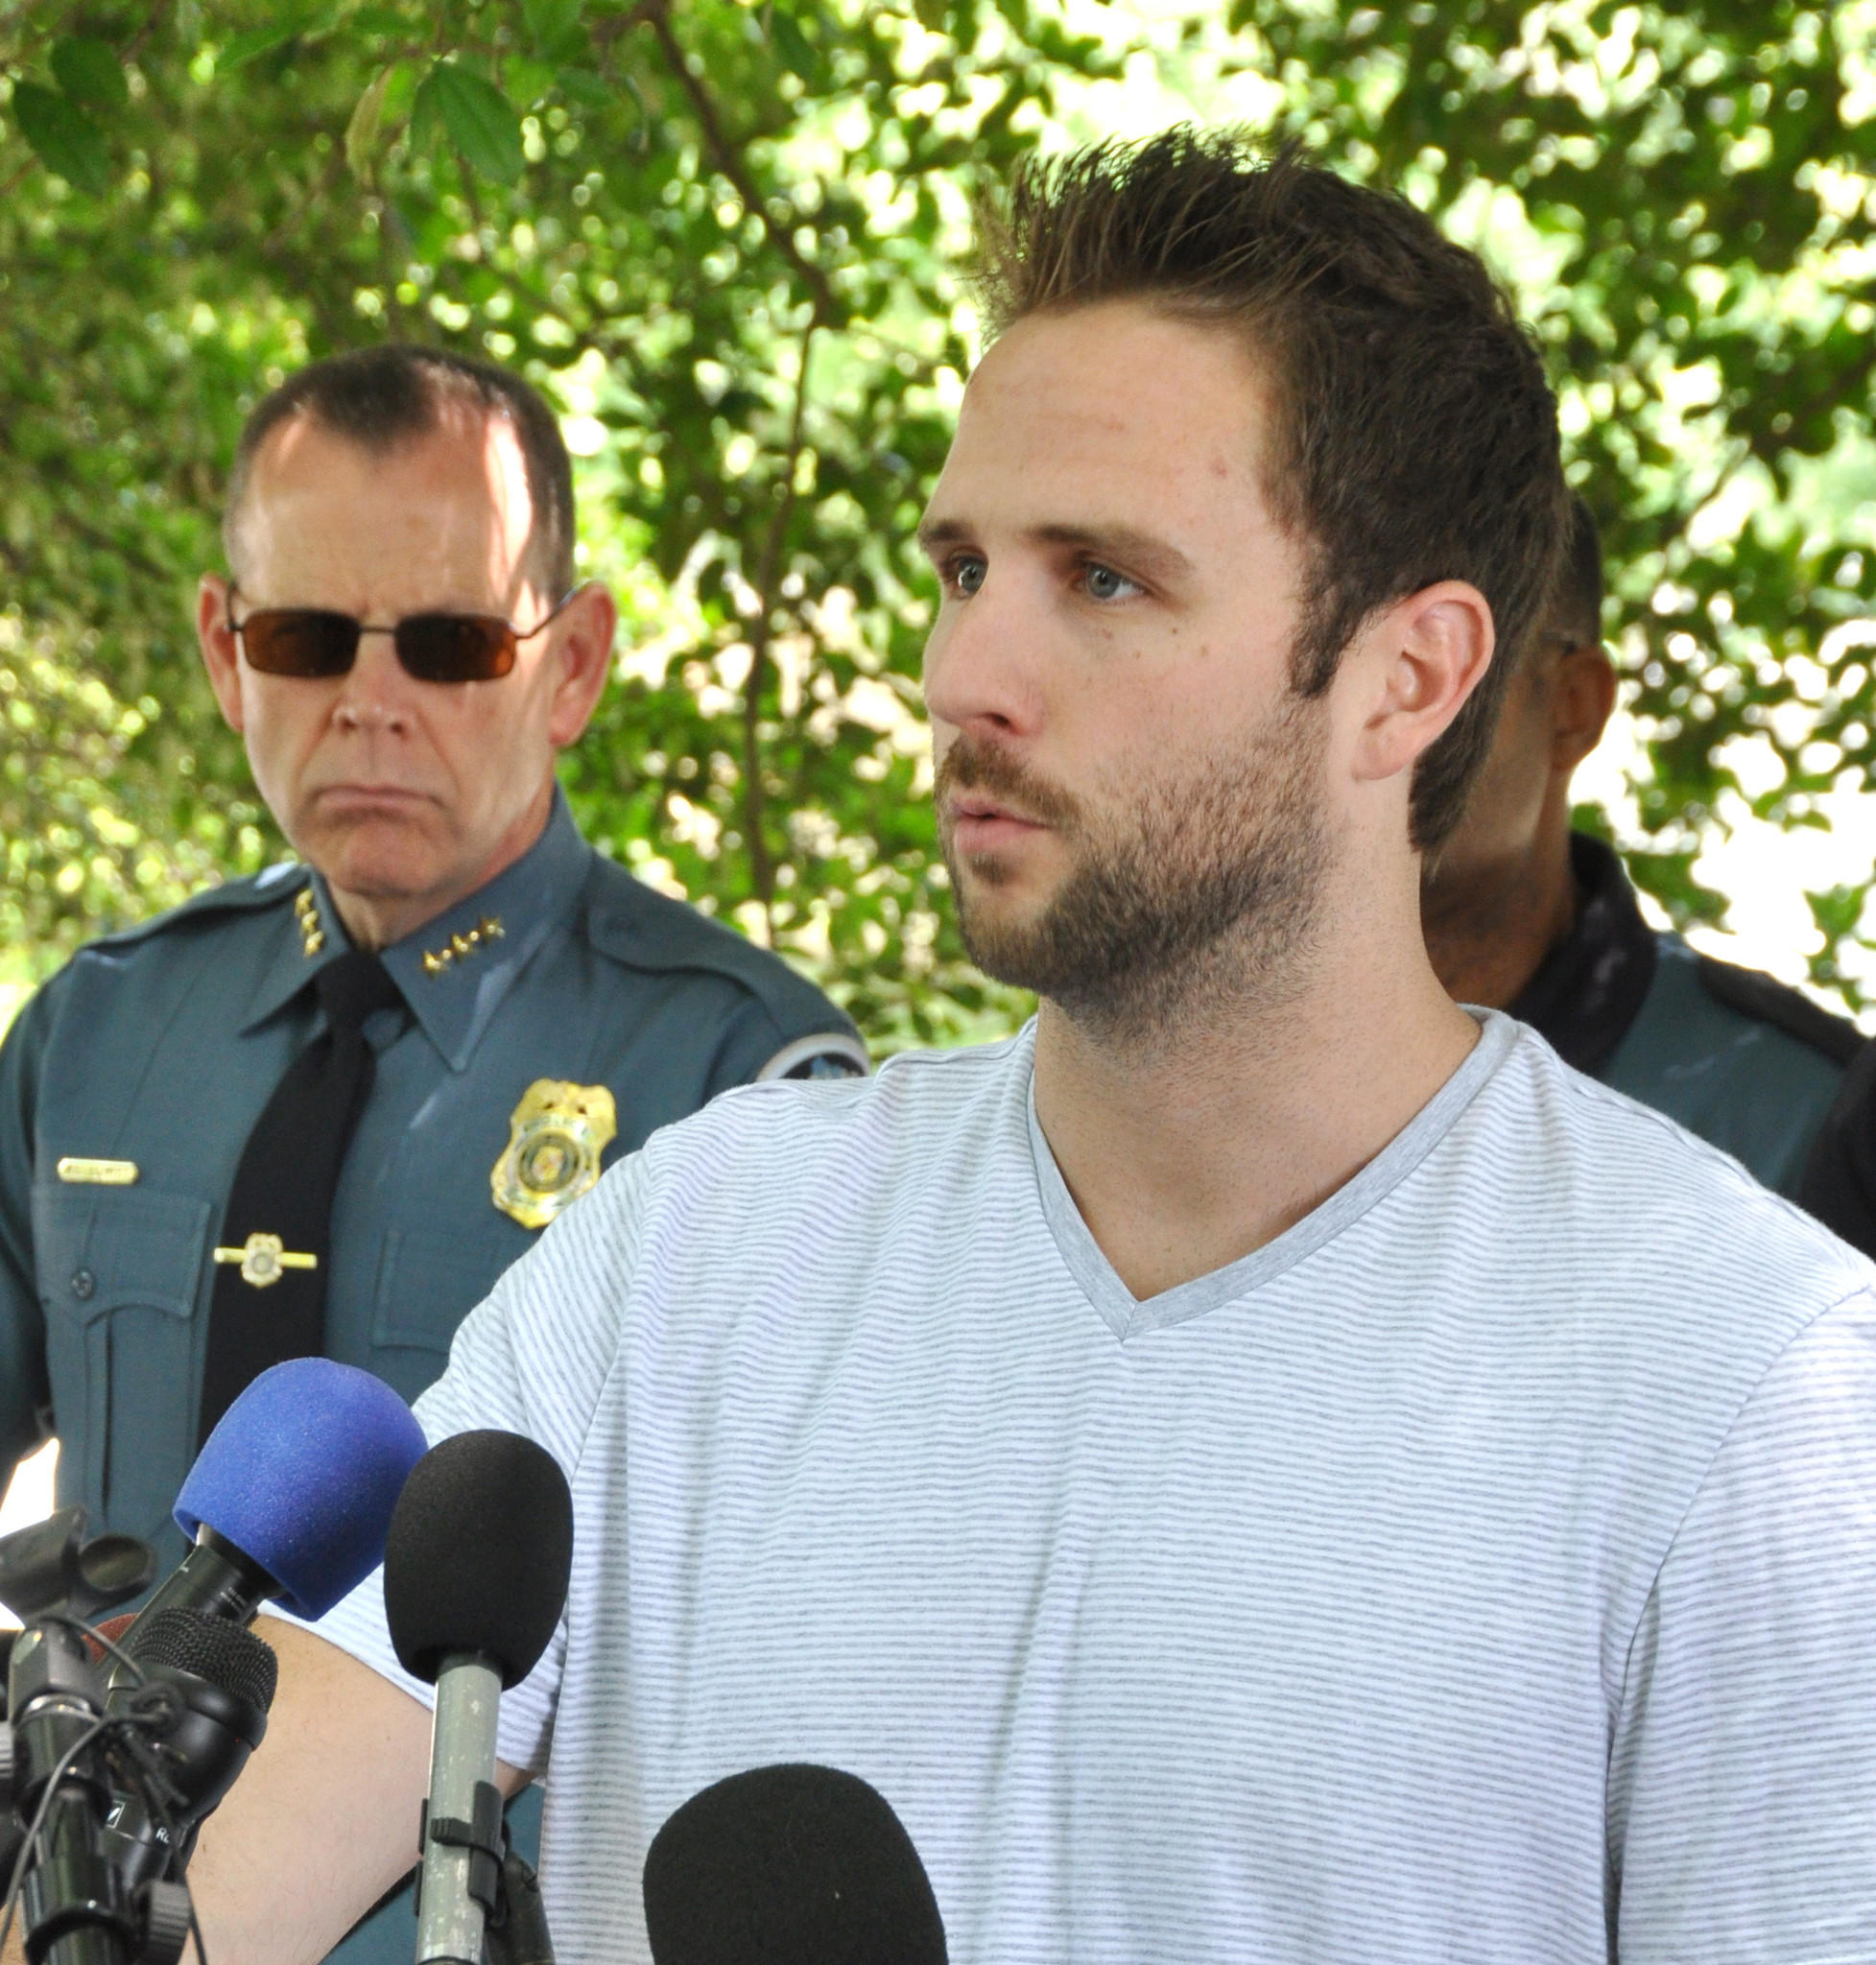 Todd Green said he and his girlfriend, Katie Pohler, were hit and injured while bicycling on the Baltimore-Annapolis Trail along Ritchie Highway near the World War II Memorial on Saturday afternoon. Pohler remains hospitalized and Green spoke at a news conference that was held Monday at the memorial.